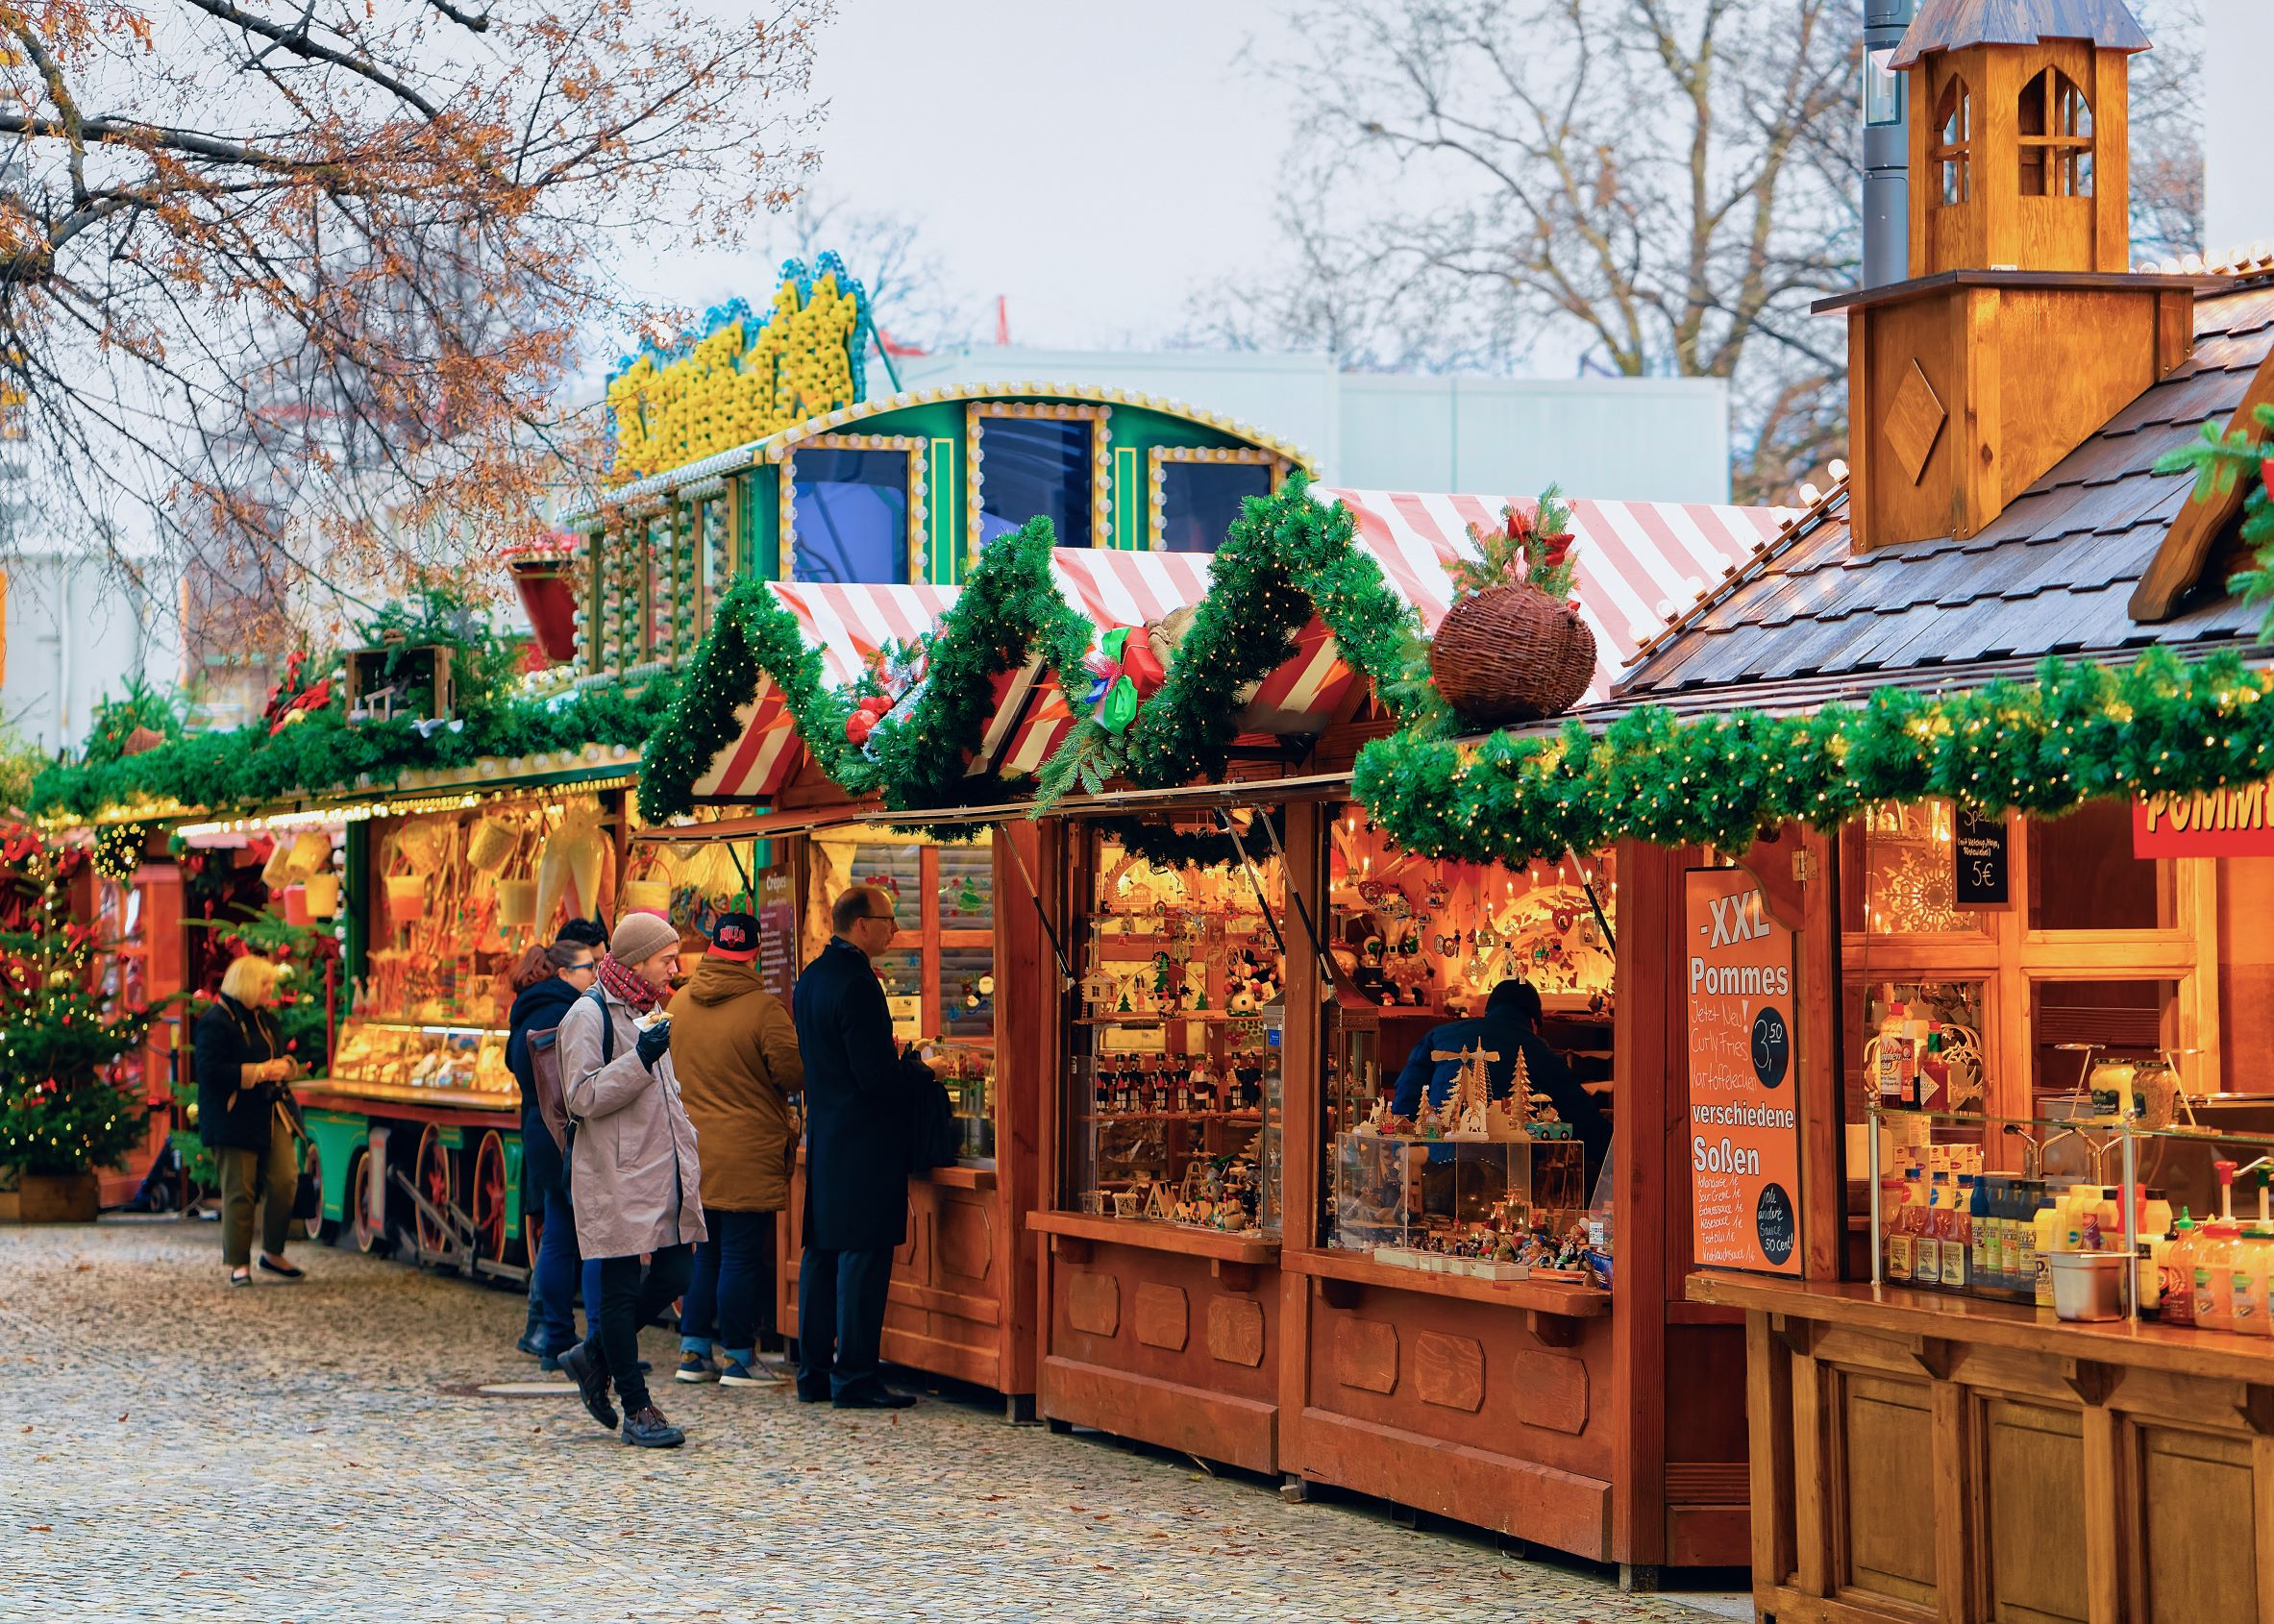 Photo of a Christkindl market, one of the most popular Christmas markets in the USA.